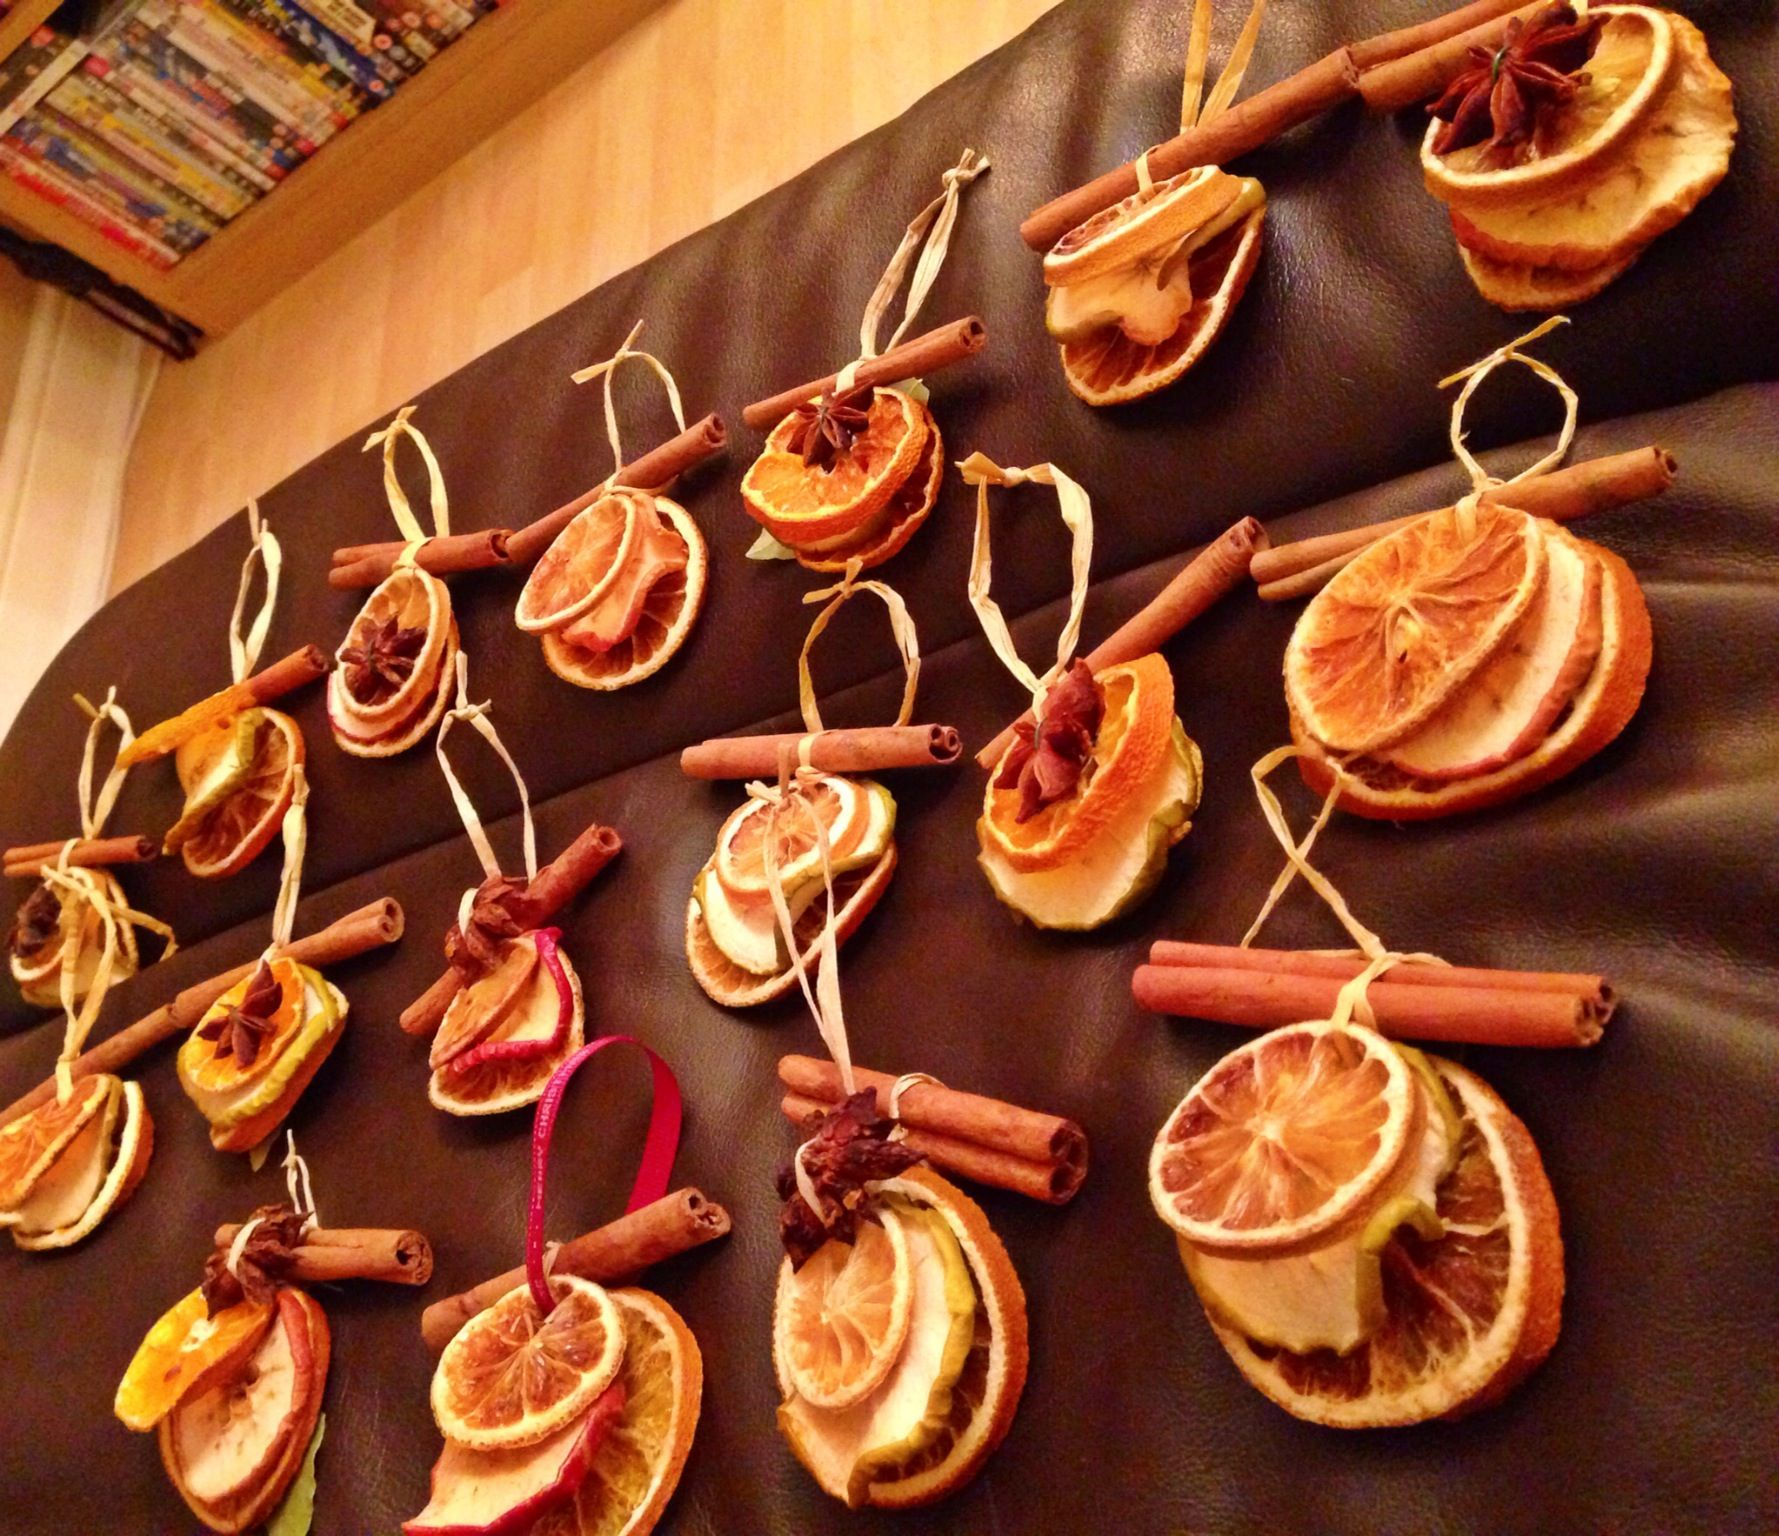 My Homemade Dried Fruit Decorations Use Orange Lemons And Apples Then Add Cinnamon Stick Orange Christmas Easy Christmas Decorations Christmas Decorations